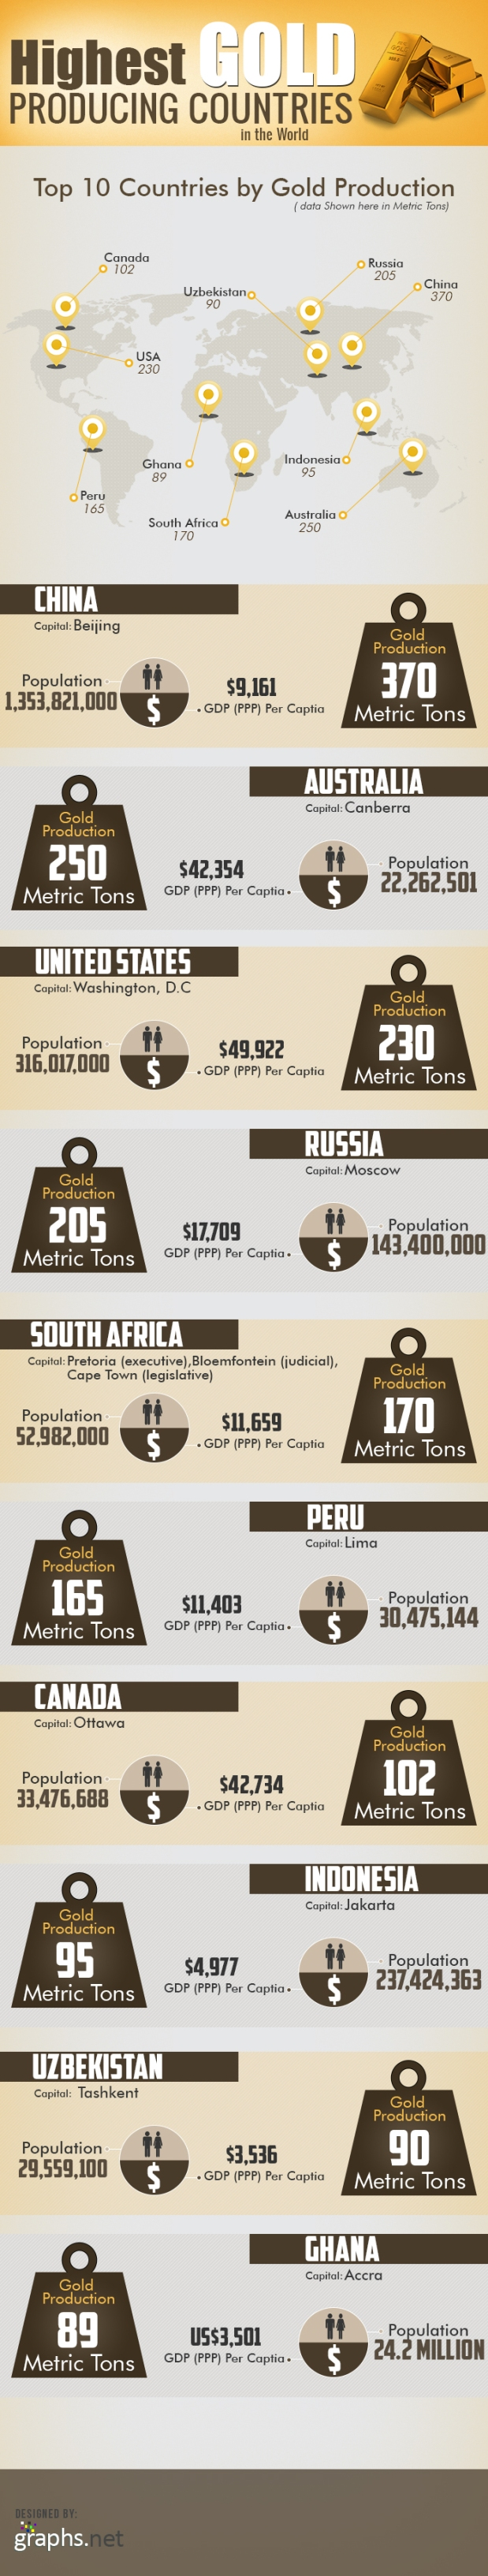 Worlds Gold Producing Countries